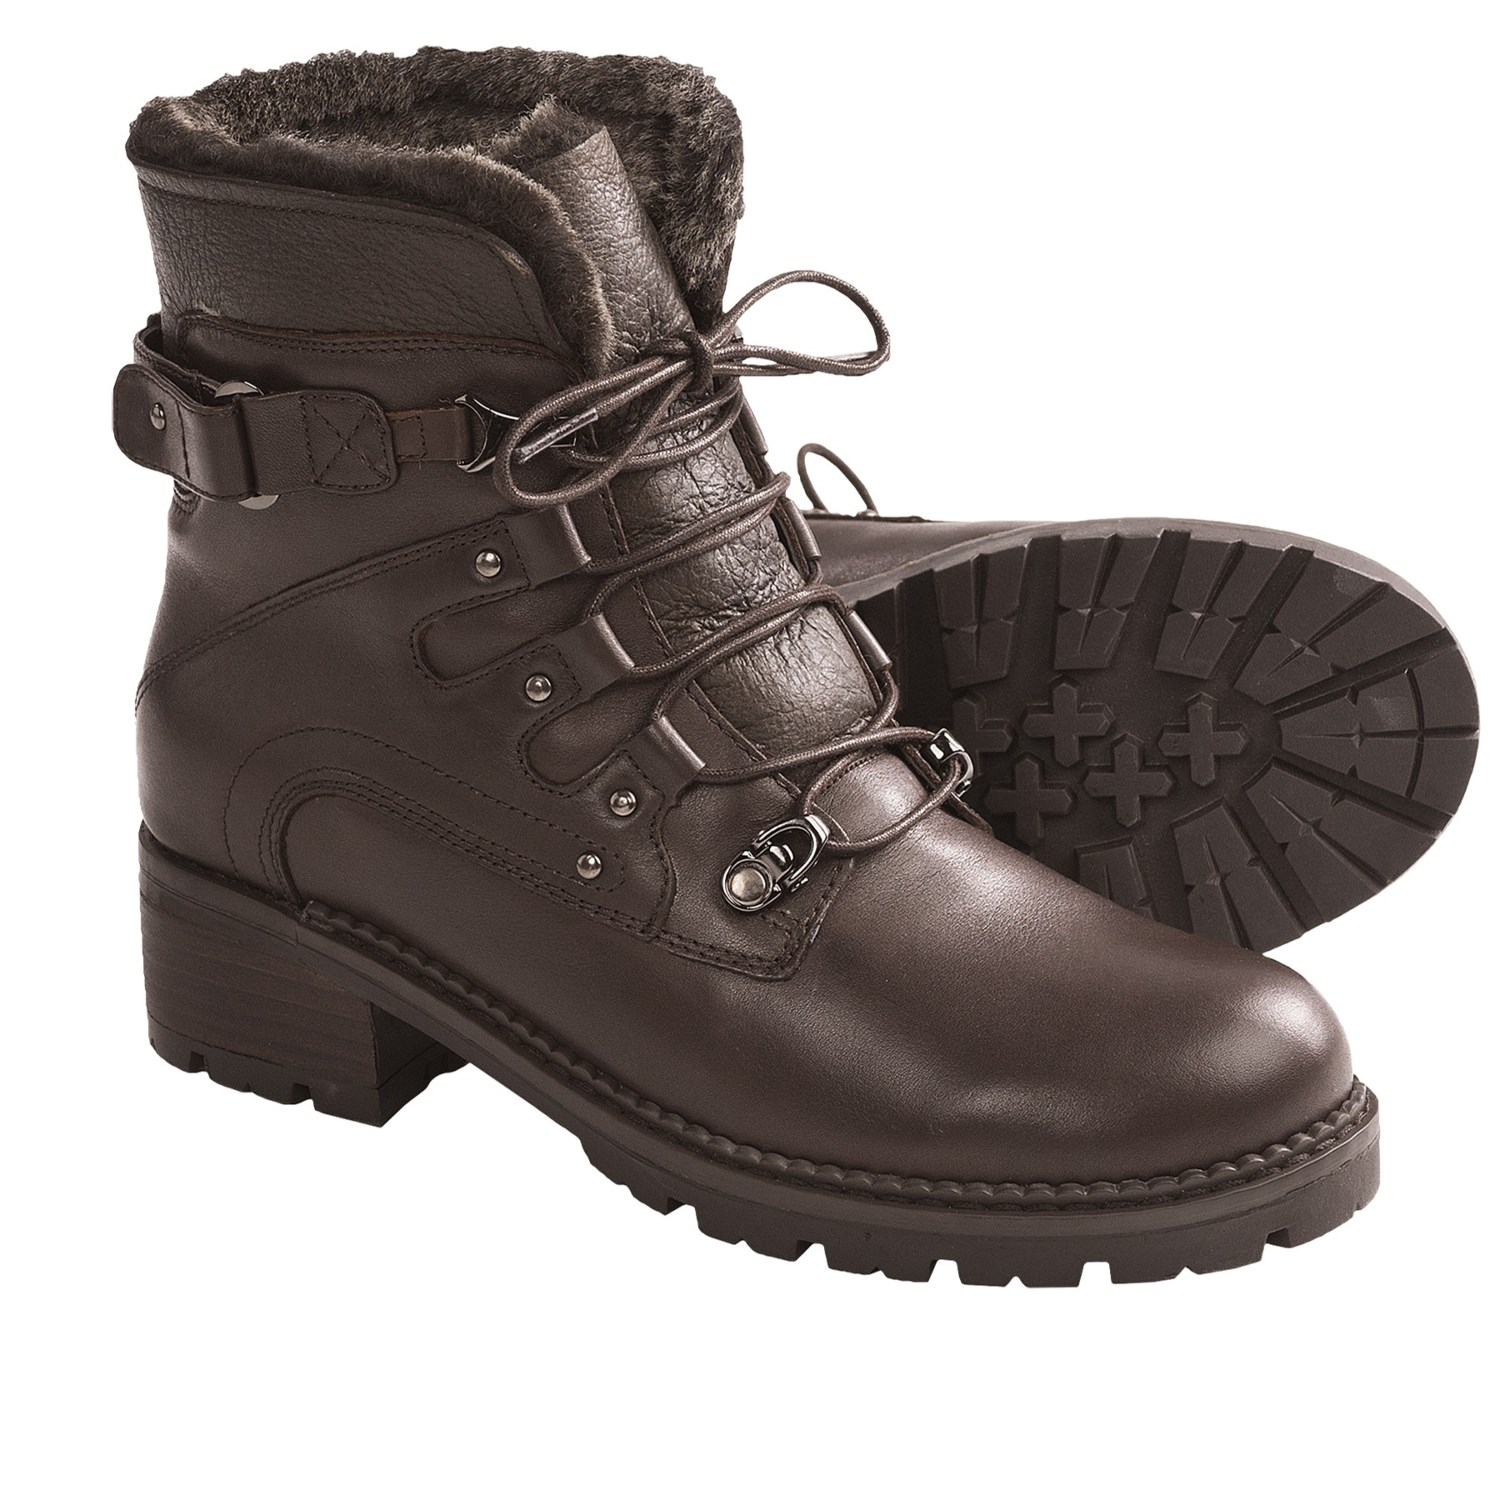 New Ara Ina Gore-Texu00ae Winter Boots - Waterproof (For Women) - Save 34%